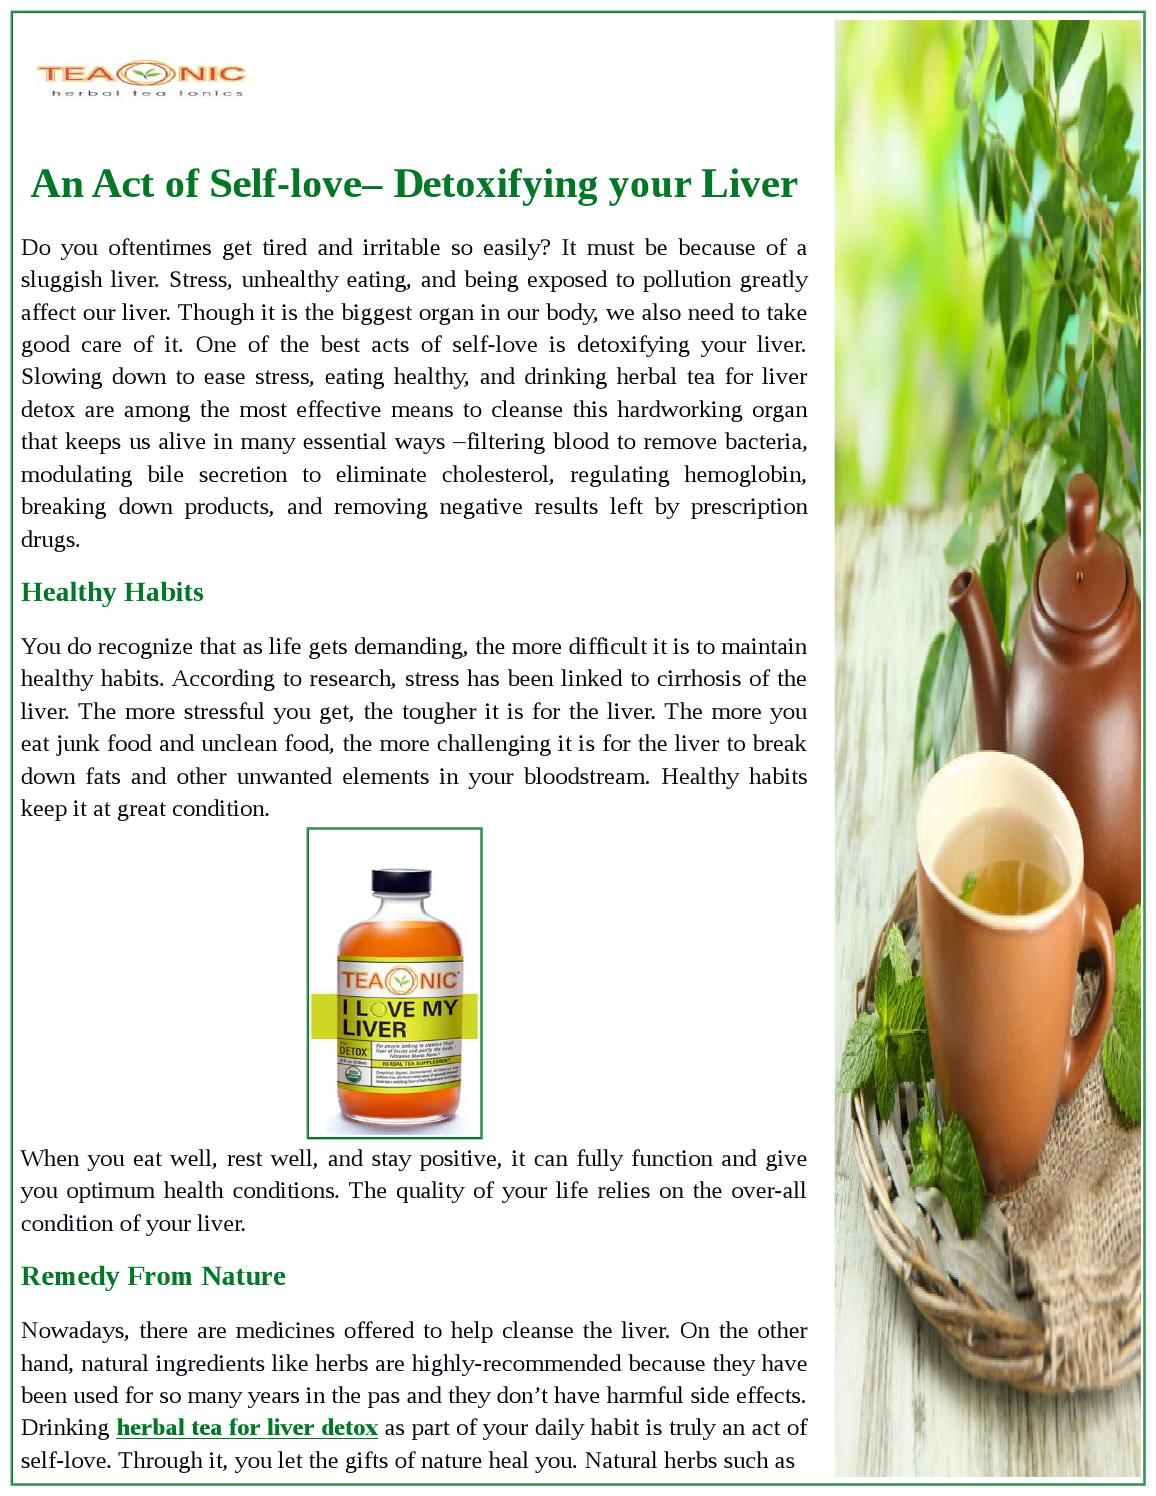 An Act Of Self-Love– Detoxifying Your Liver by TeaOnic Herbal Tea